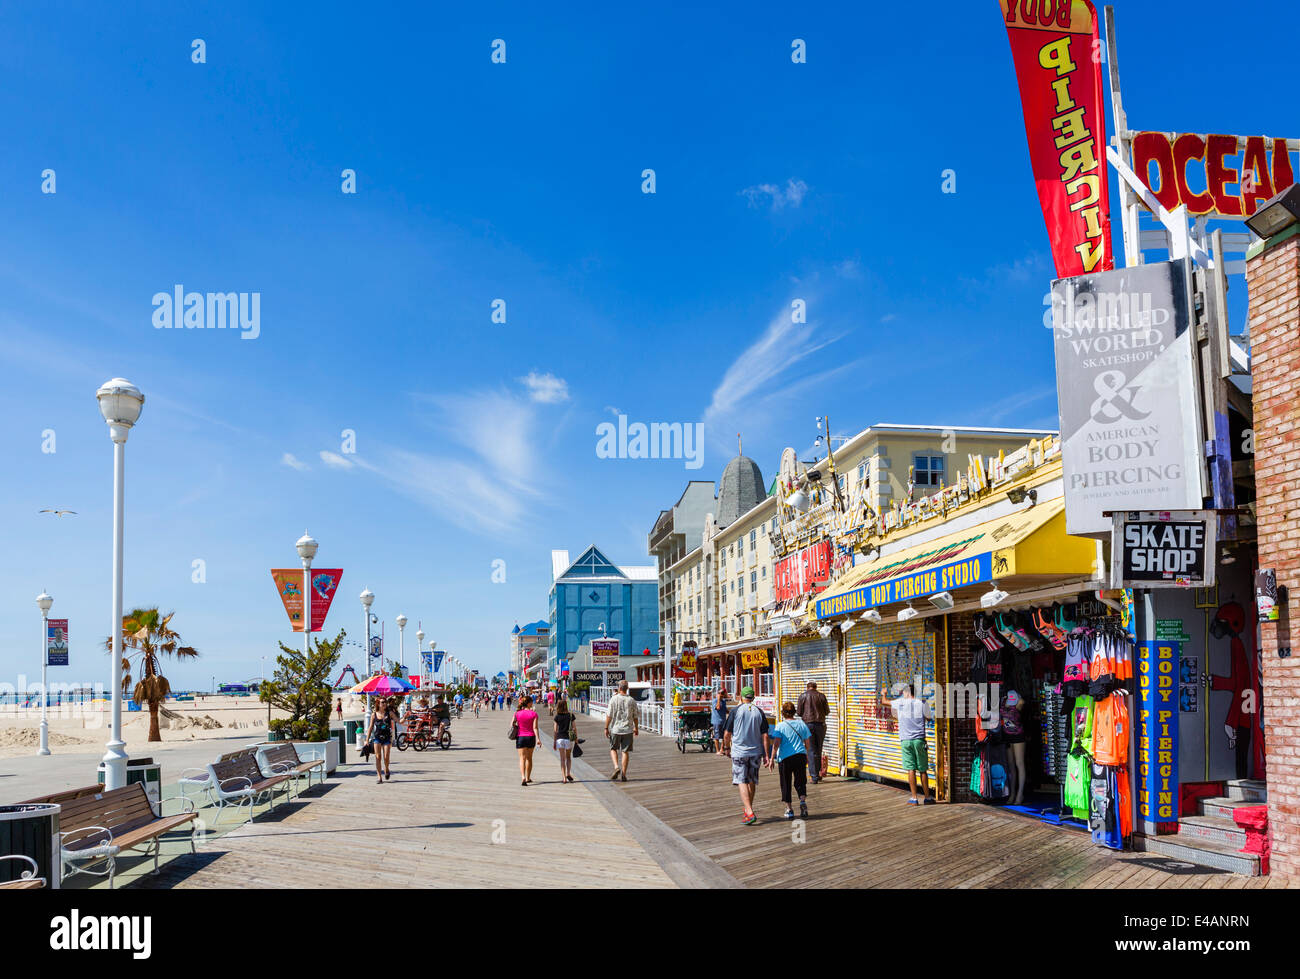 The boardwalk at Ocean City, Worcester County, Maryland, USA - Stock Image